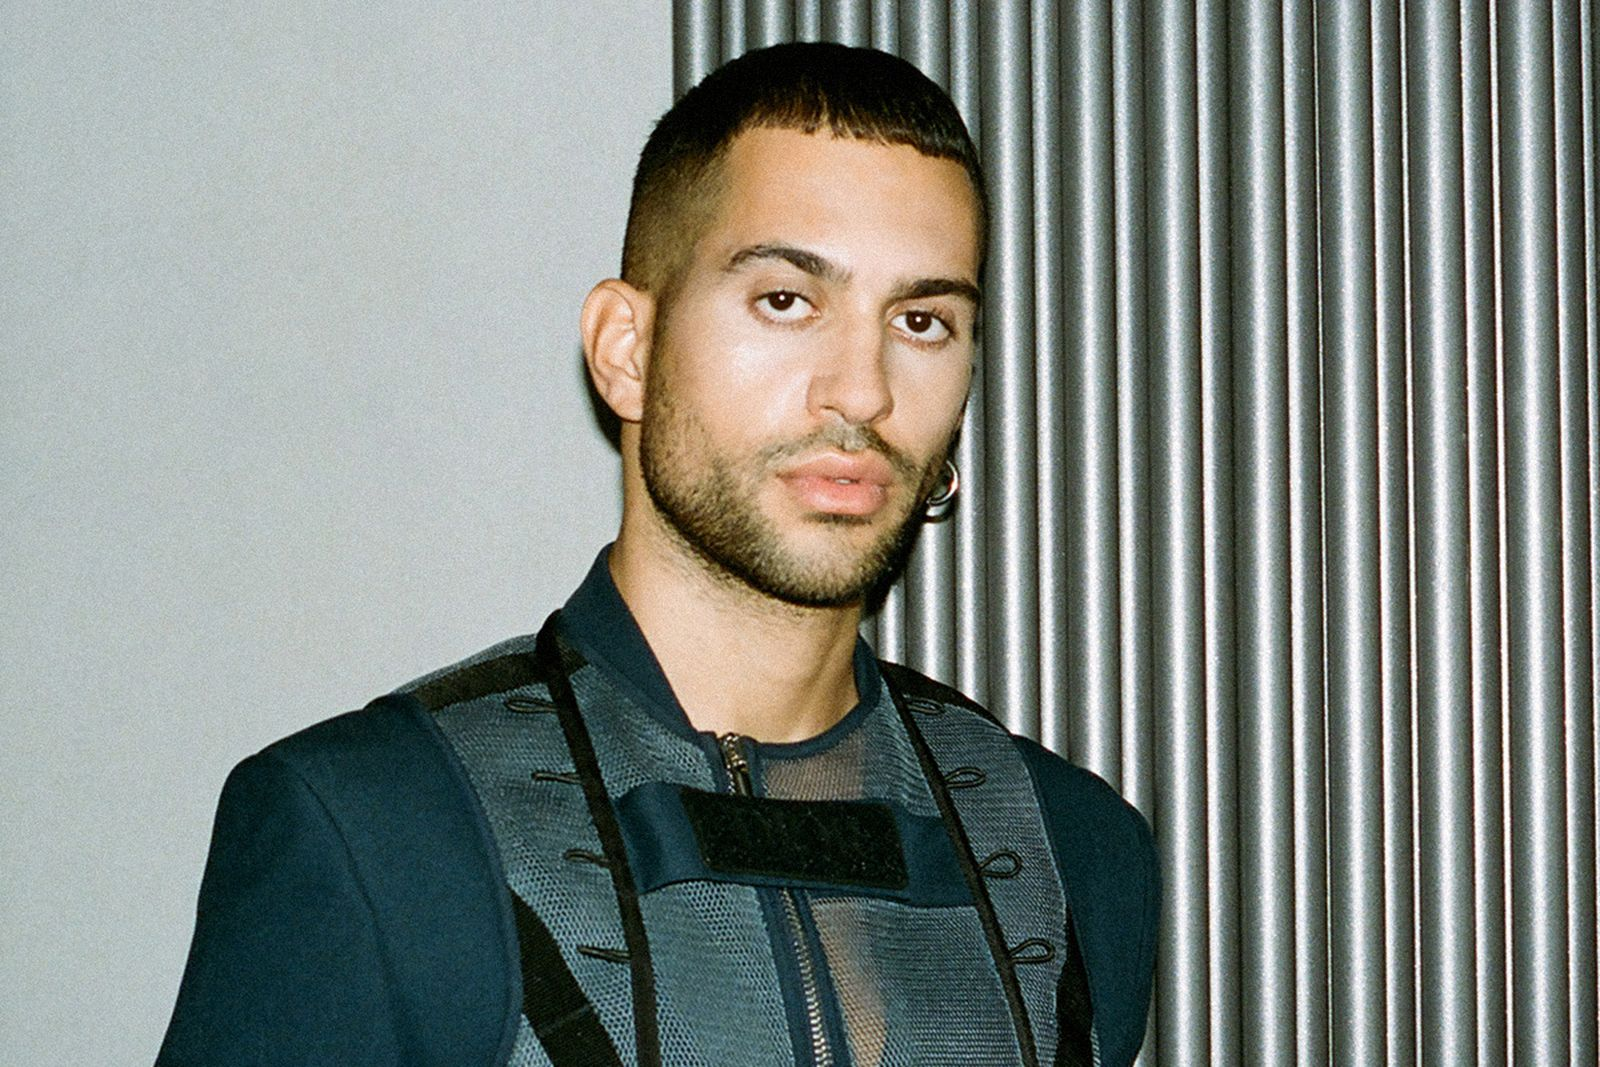 how-mahmood-went-from-wasted-youth-to-eurovision-star-main